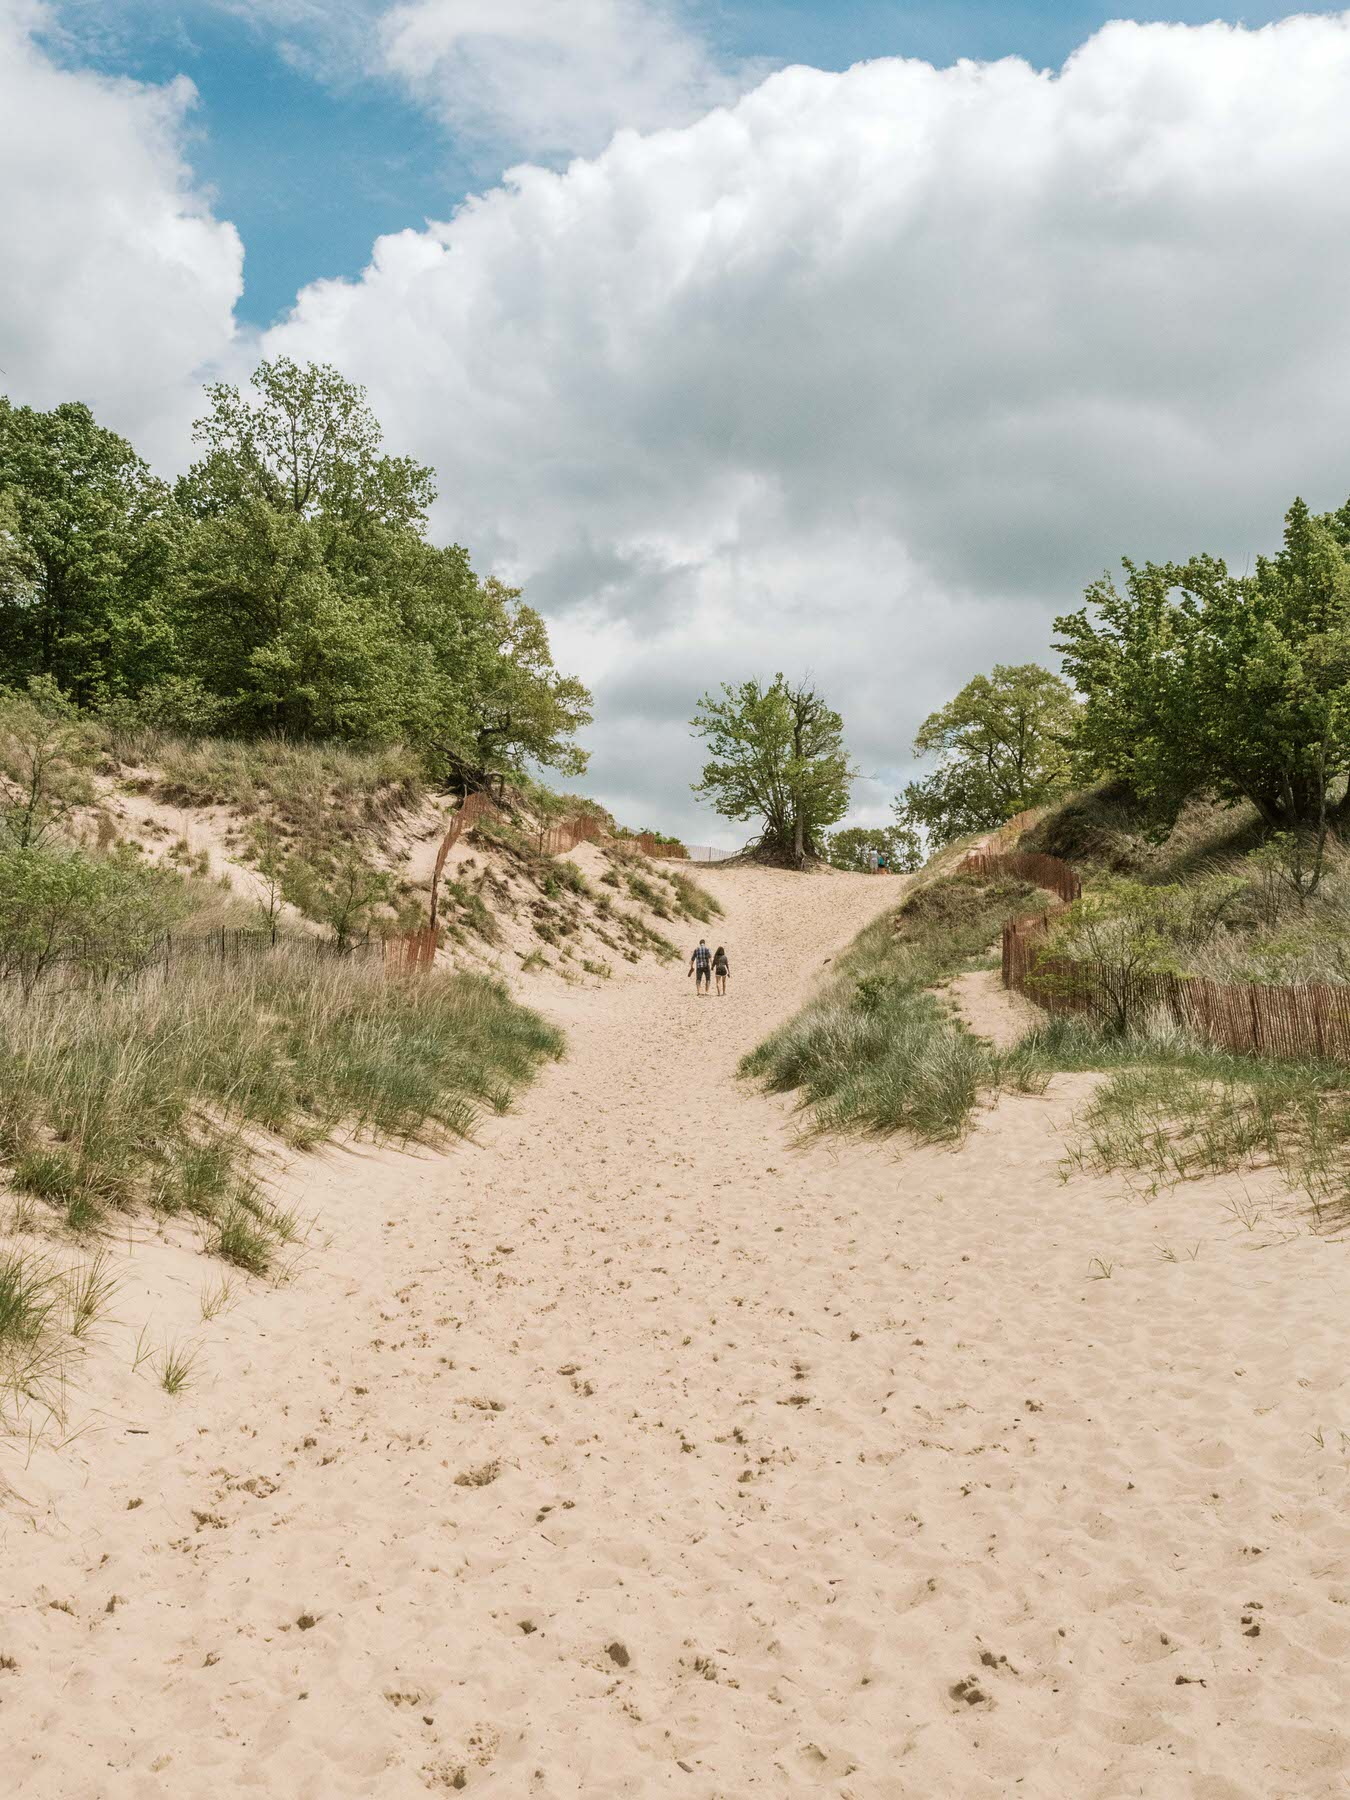 Everyone visits Indiana Dunes for the beach but now that it's officially a National Park, it's the perfect excuse to check out all the amazing hiking trails the area has to offer. Whether you are hiking in sand up the tallest dune in Indiana, or trekking through bogs and marshland, there are so many fun hiking routes to explore. Indiana Dunes National Park is the perfect vacation spot for anyone in the Midwest. #traveldestinations #indiana #hiking